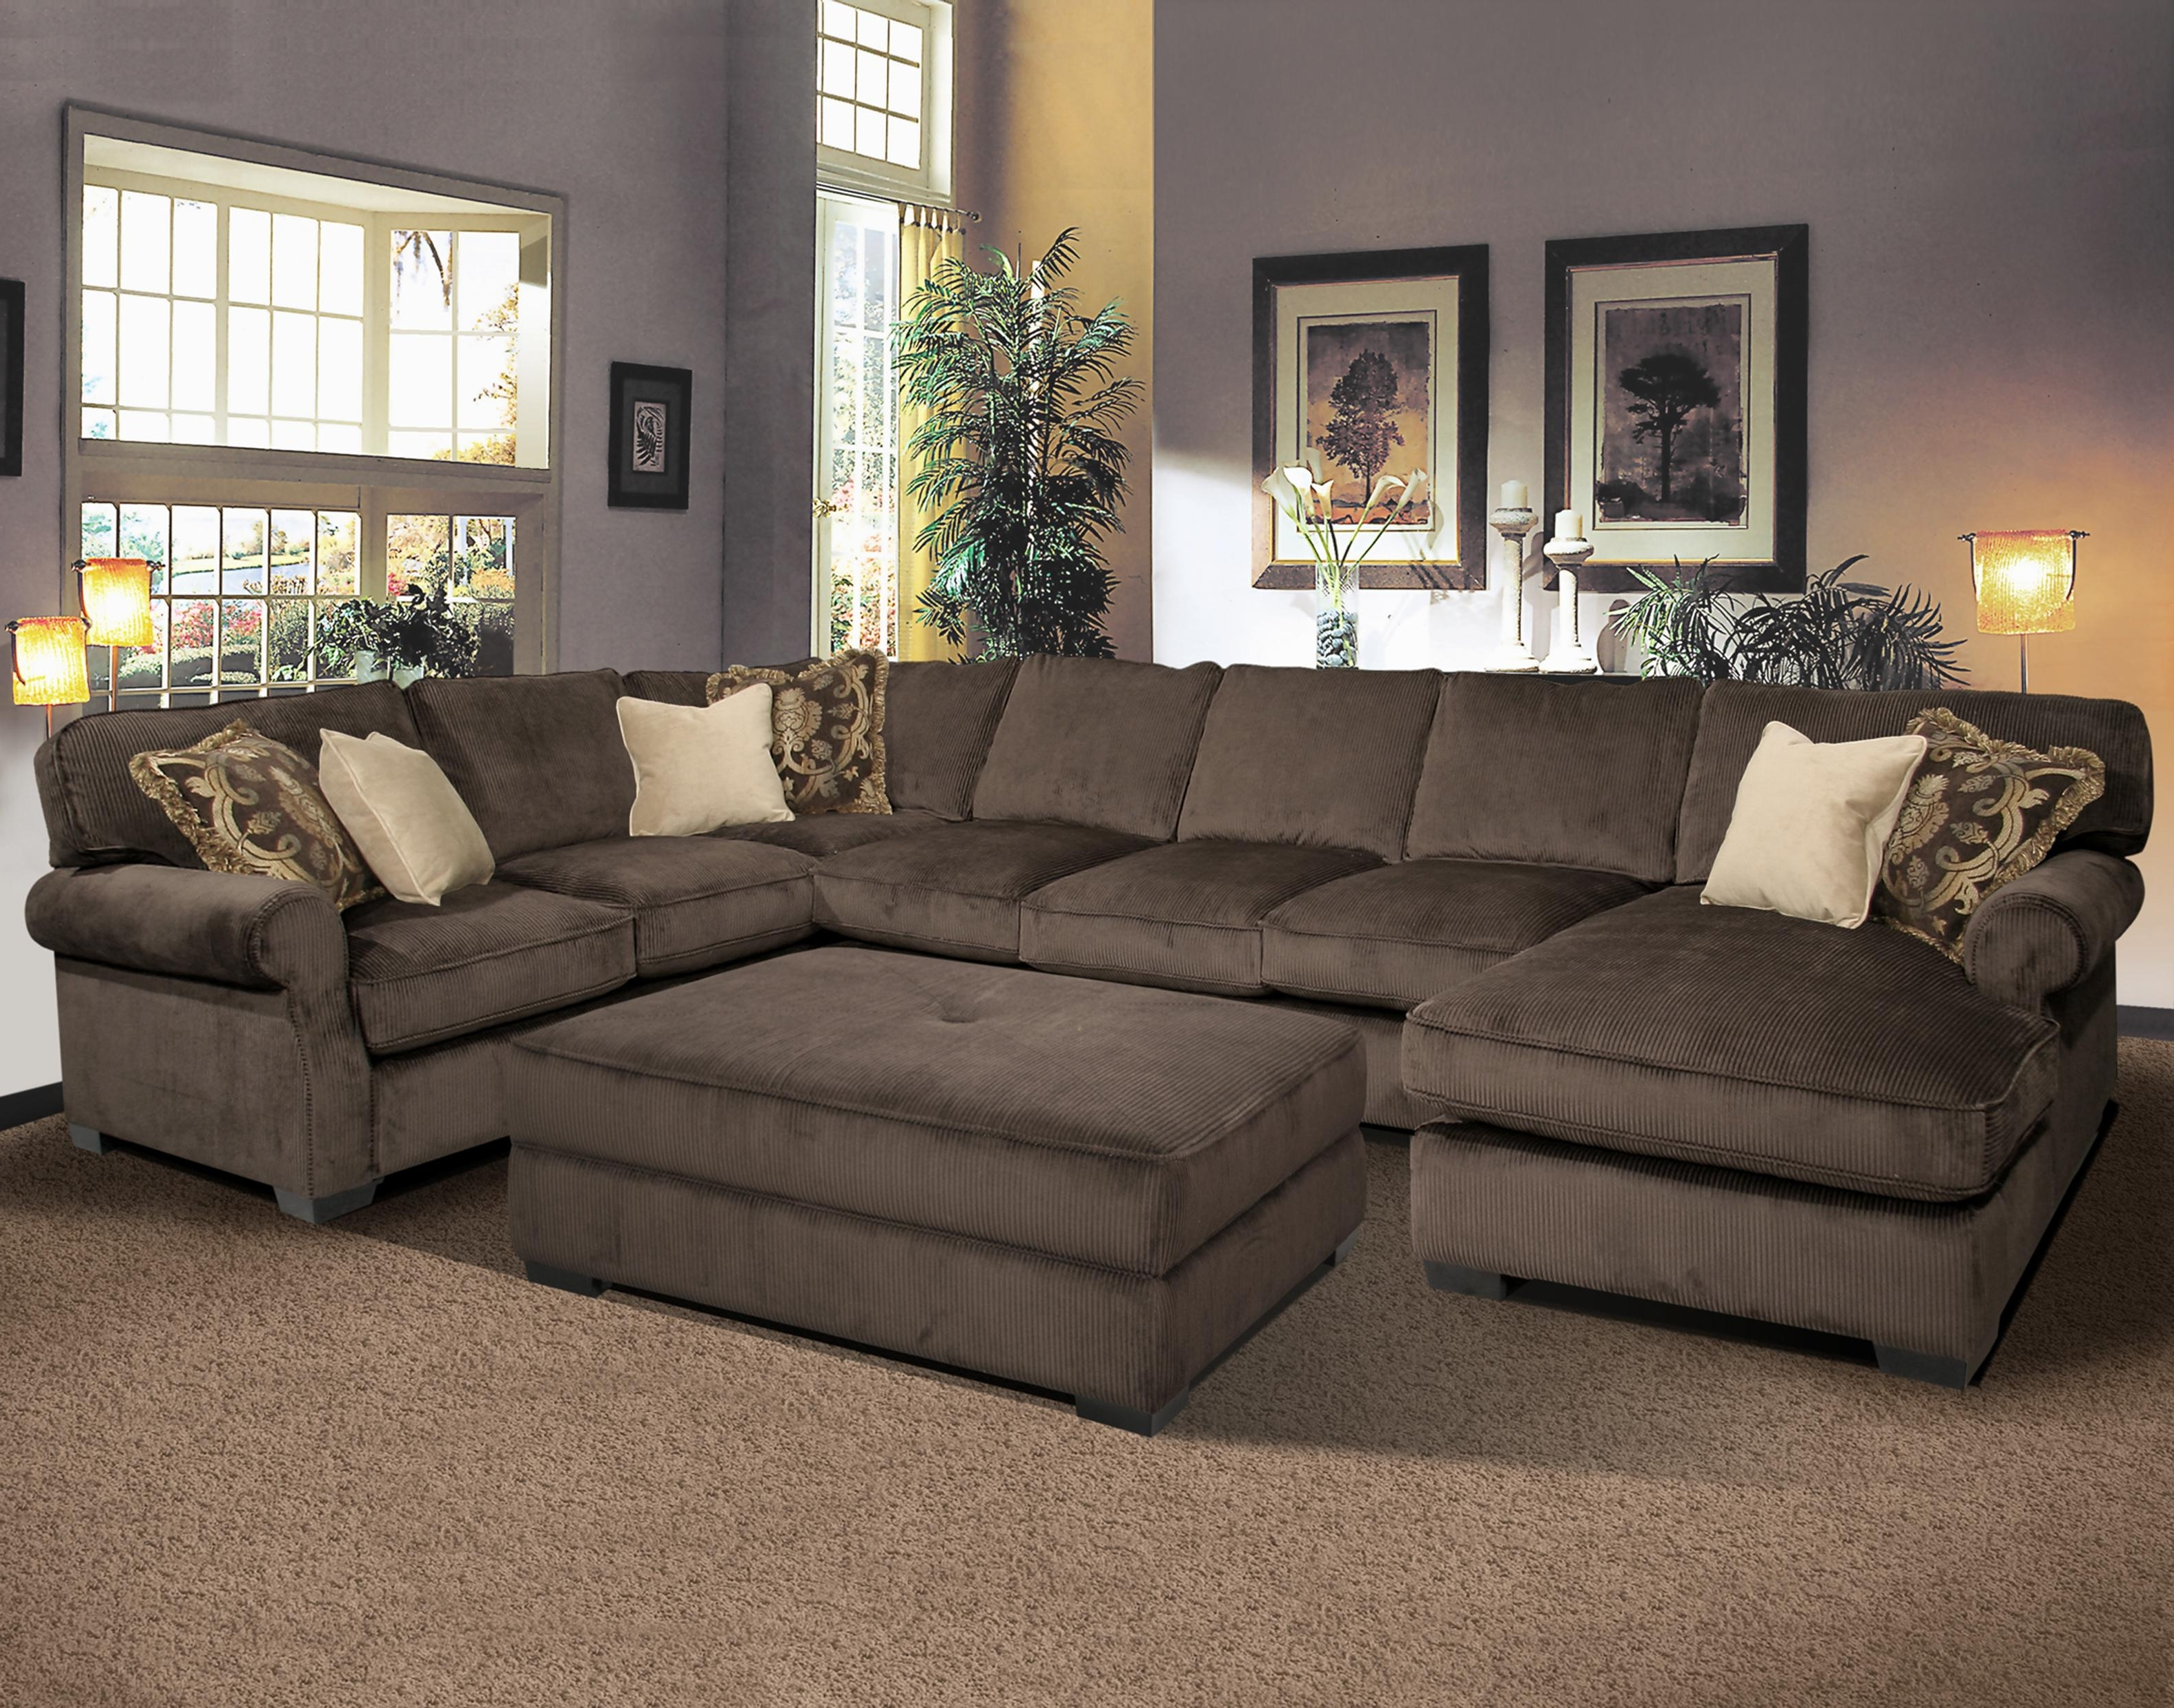 Exceptionnel Most Popular Sofa : L Shaped Sectional Sectional With Pull Out Bed Sofa Set  Regarding Nz